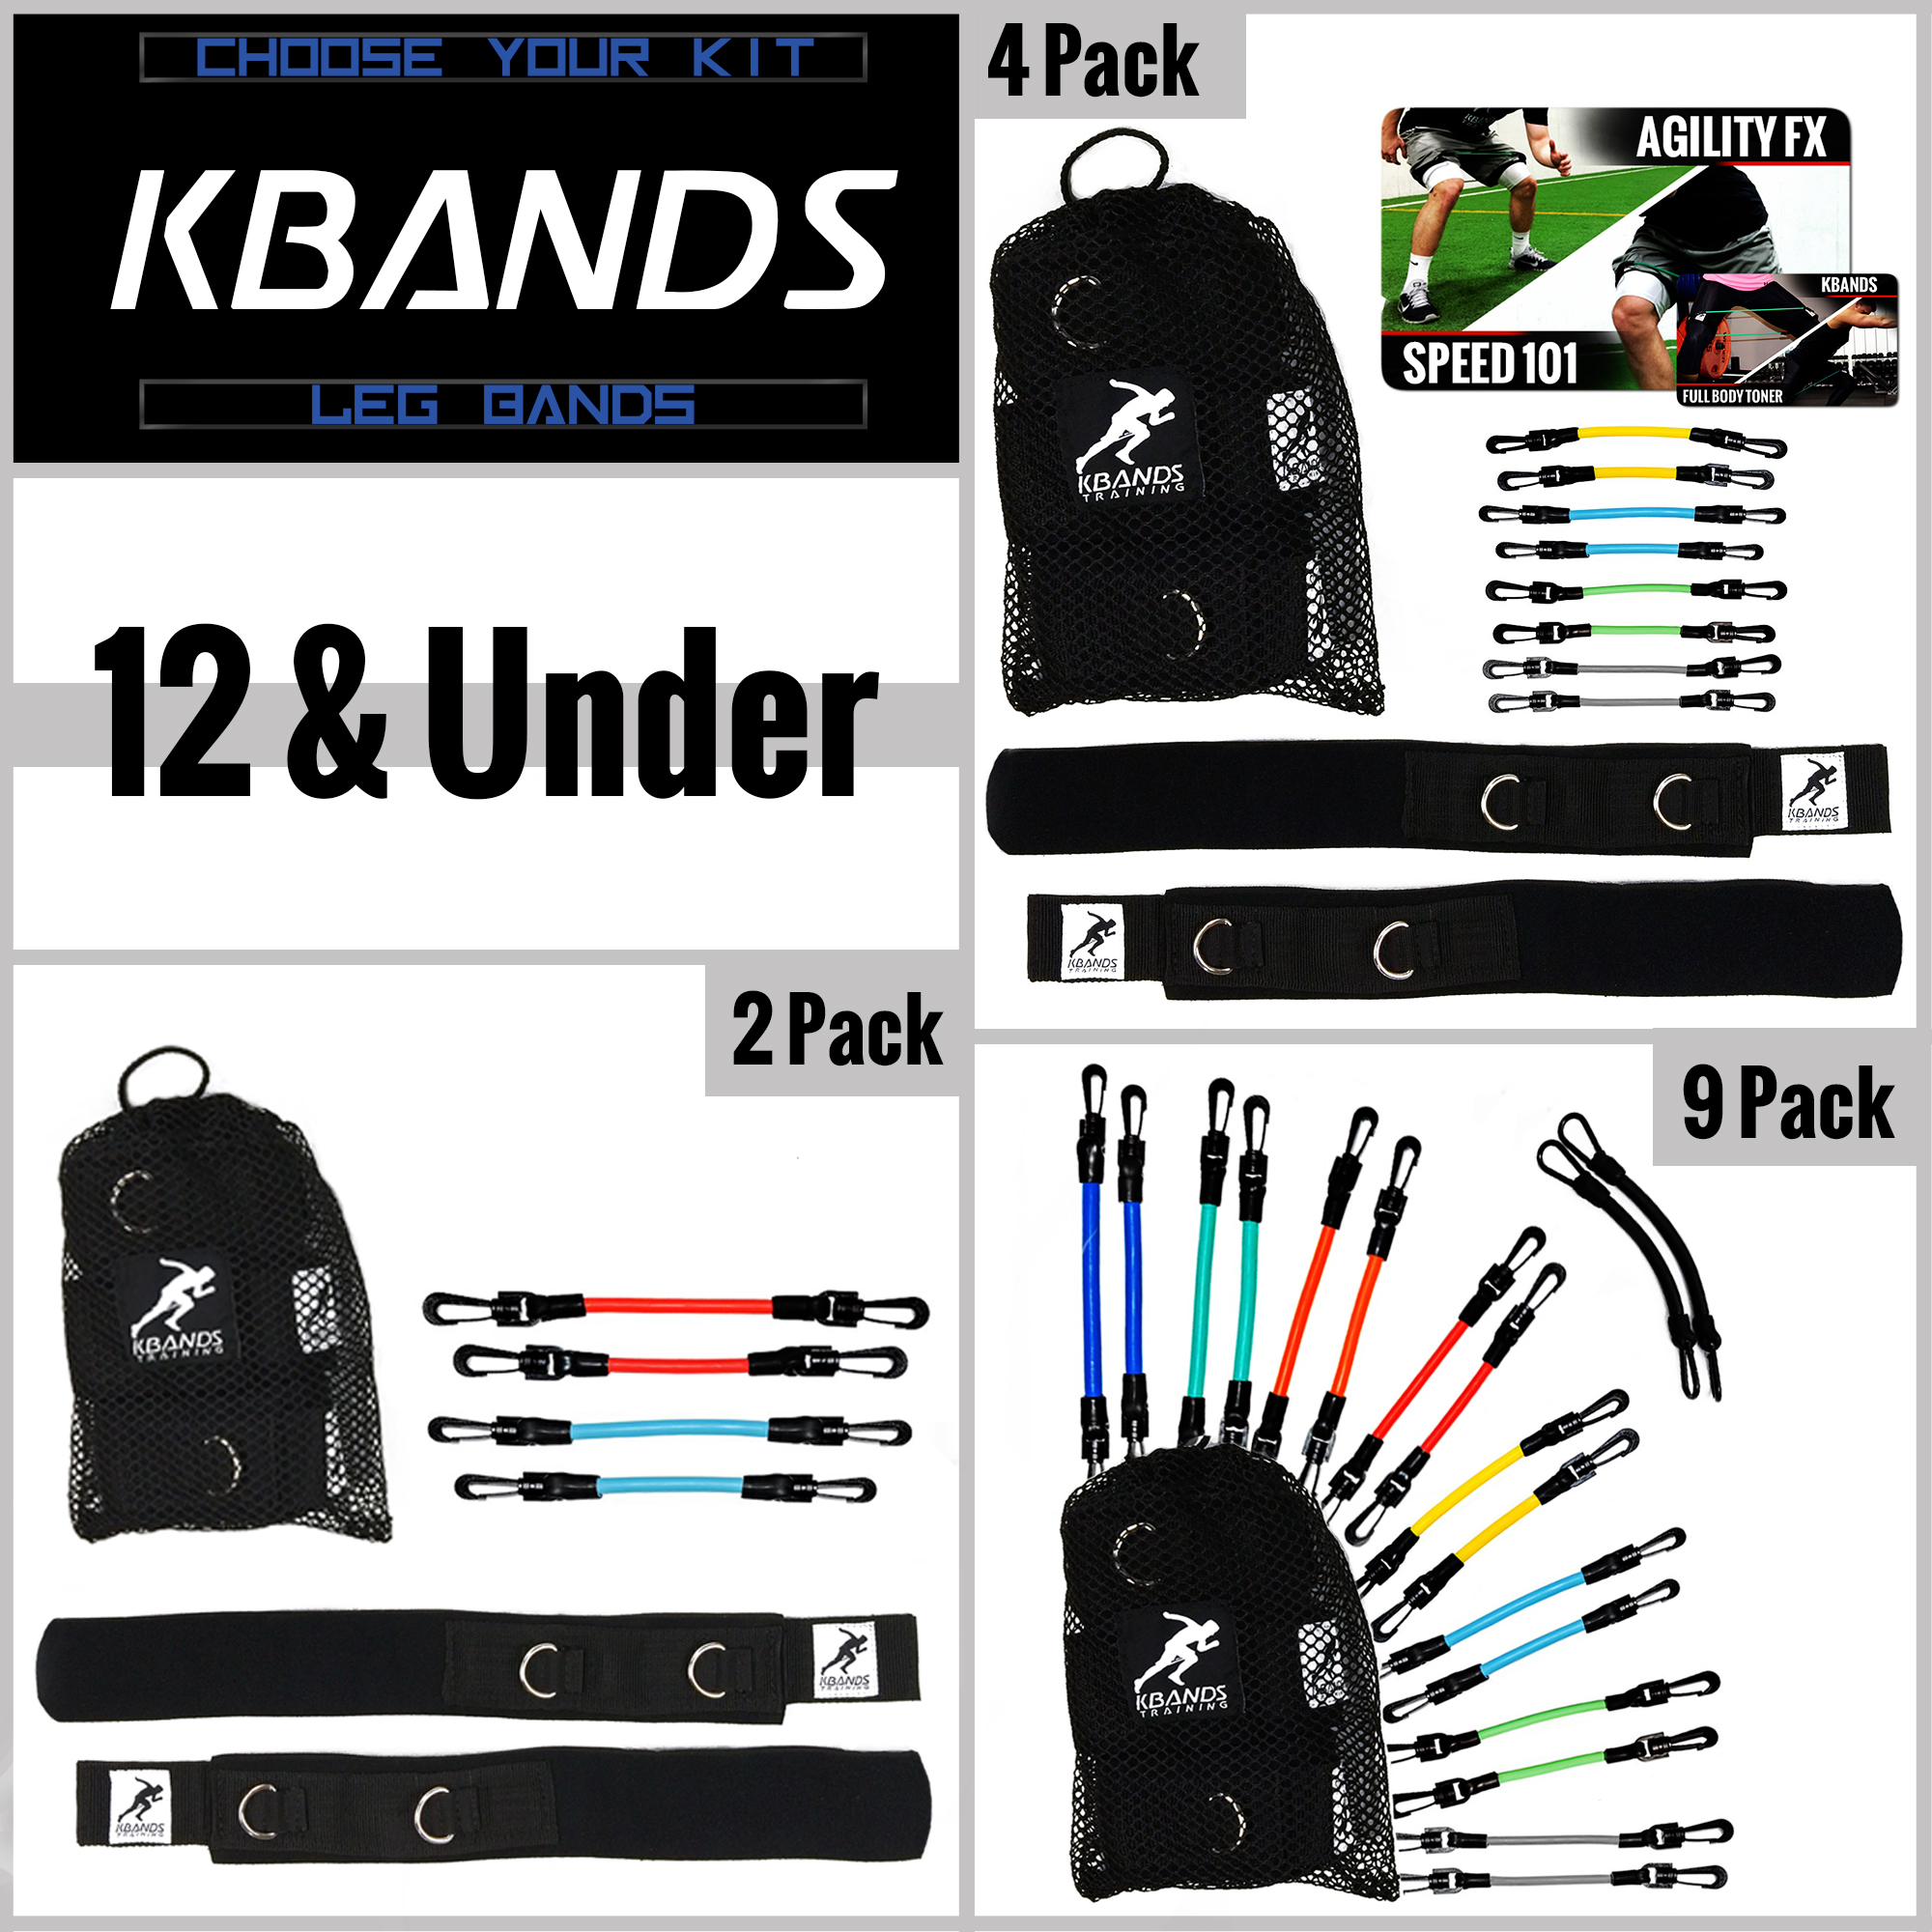 Kbands Youth Kit Options